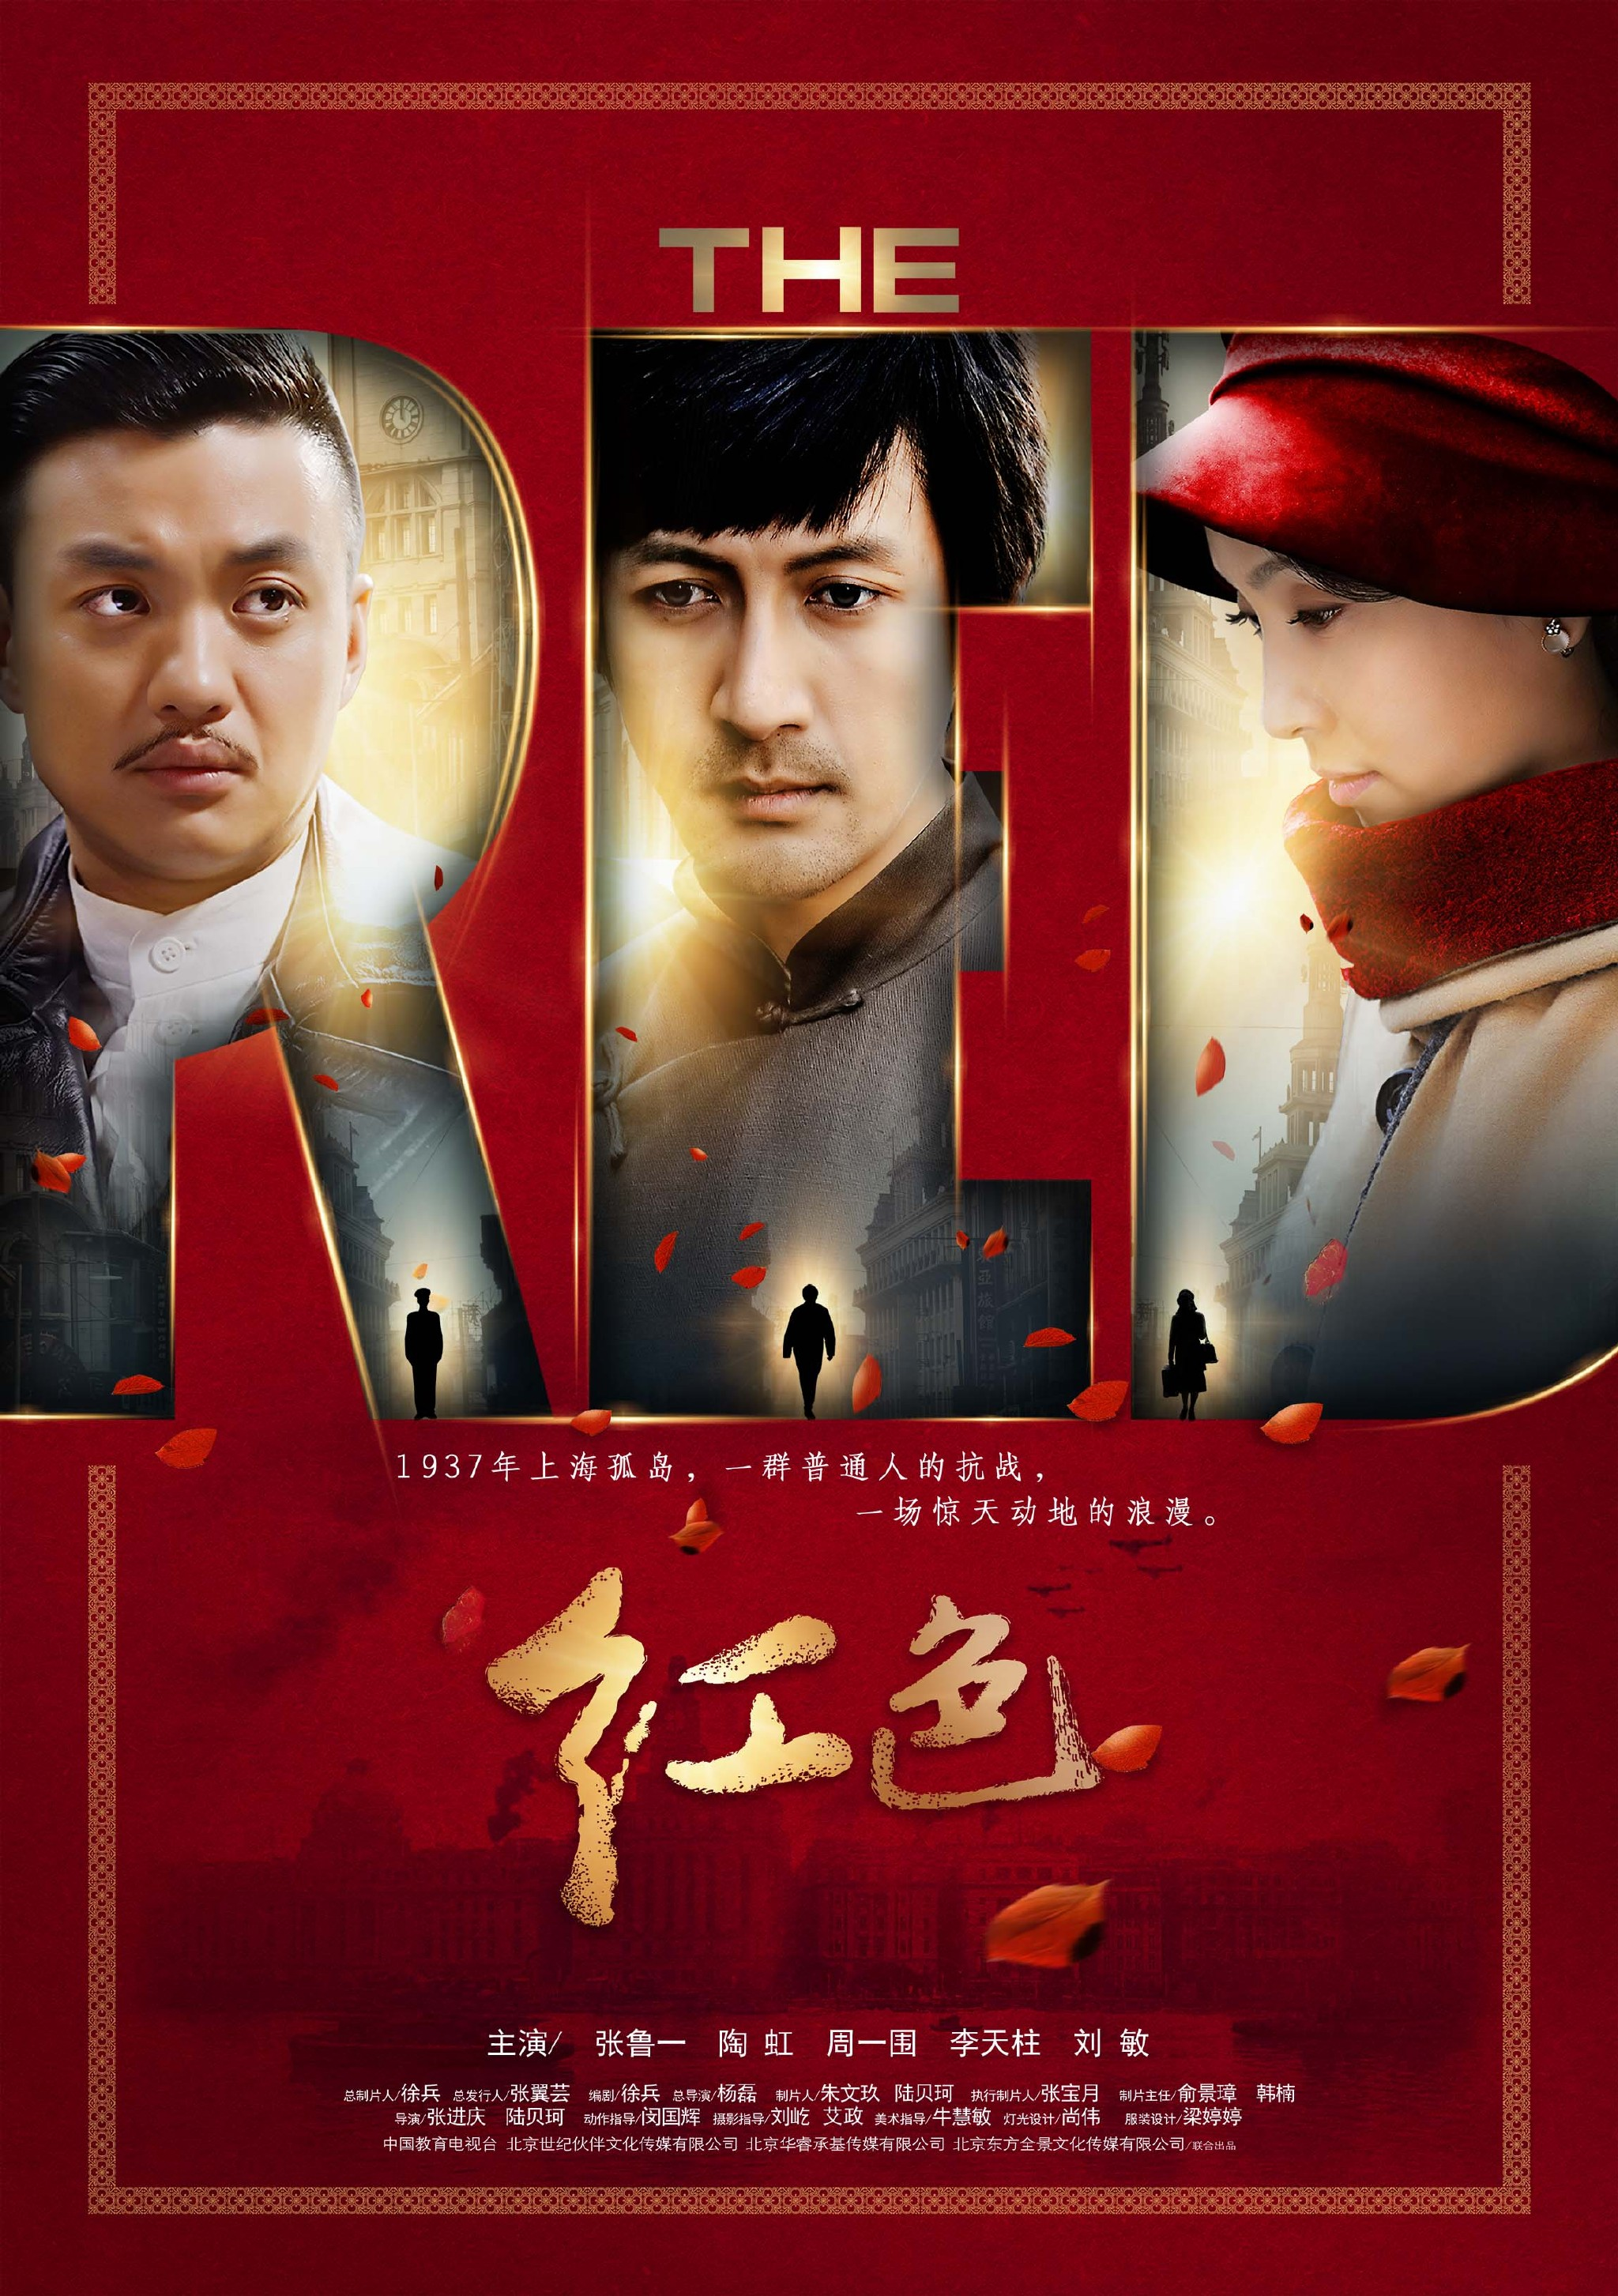 Hong se (TV Series 2014) - IMDb